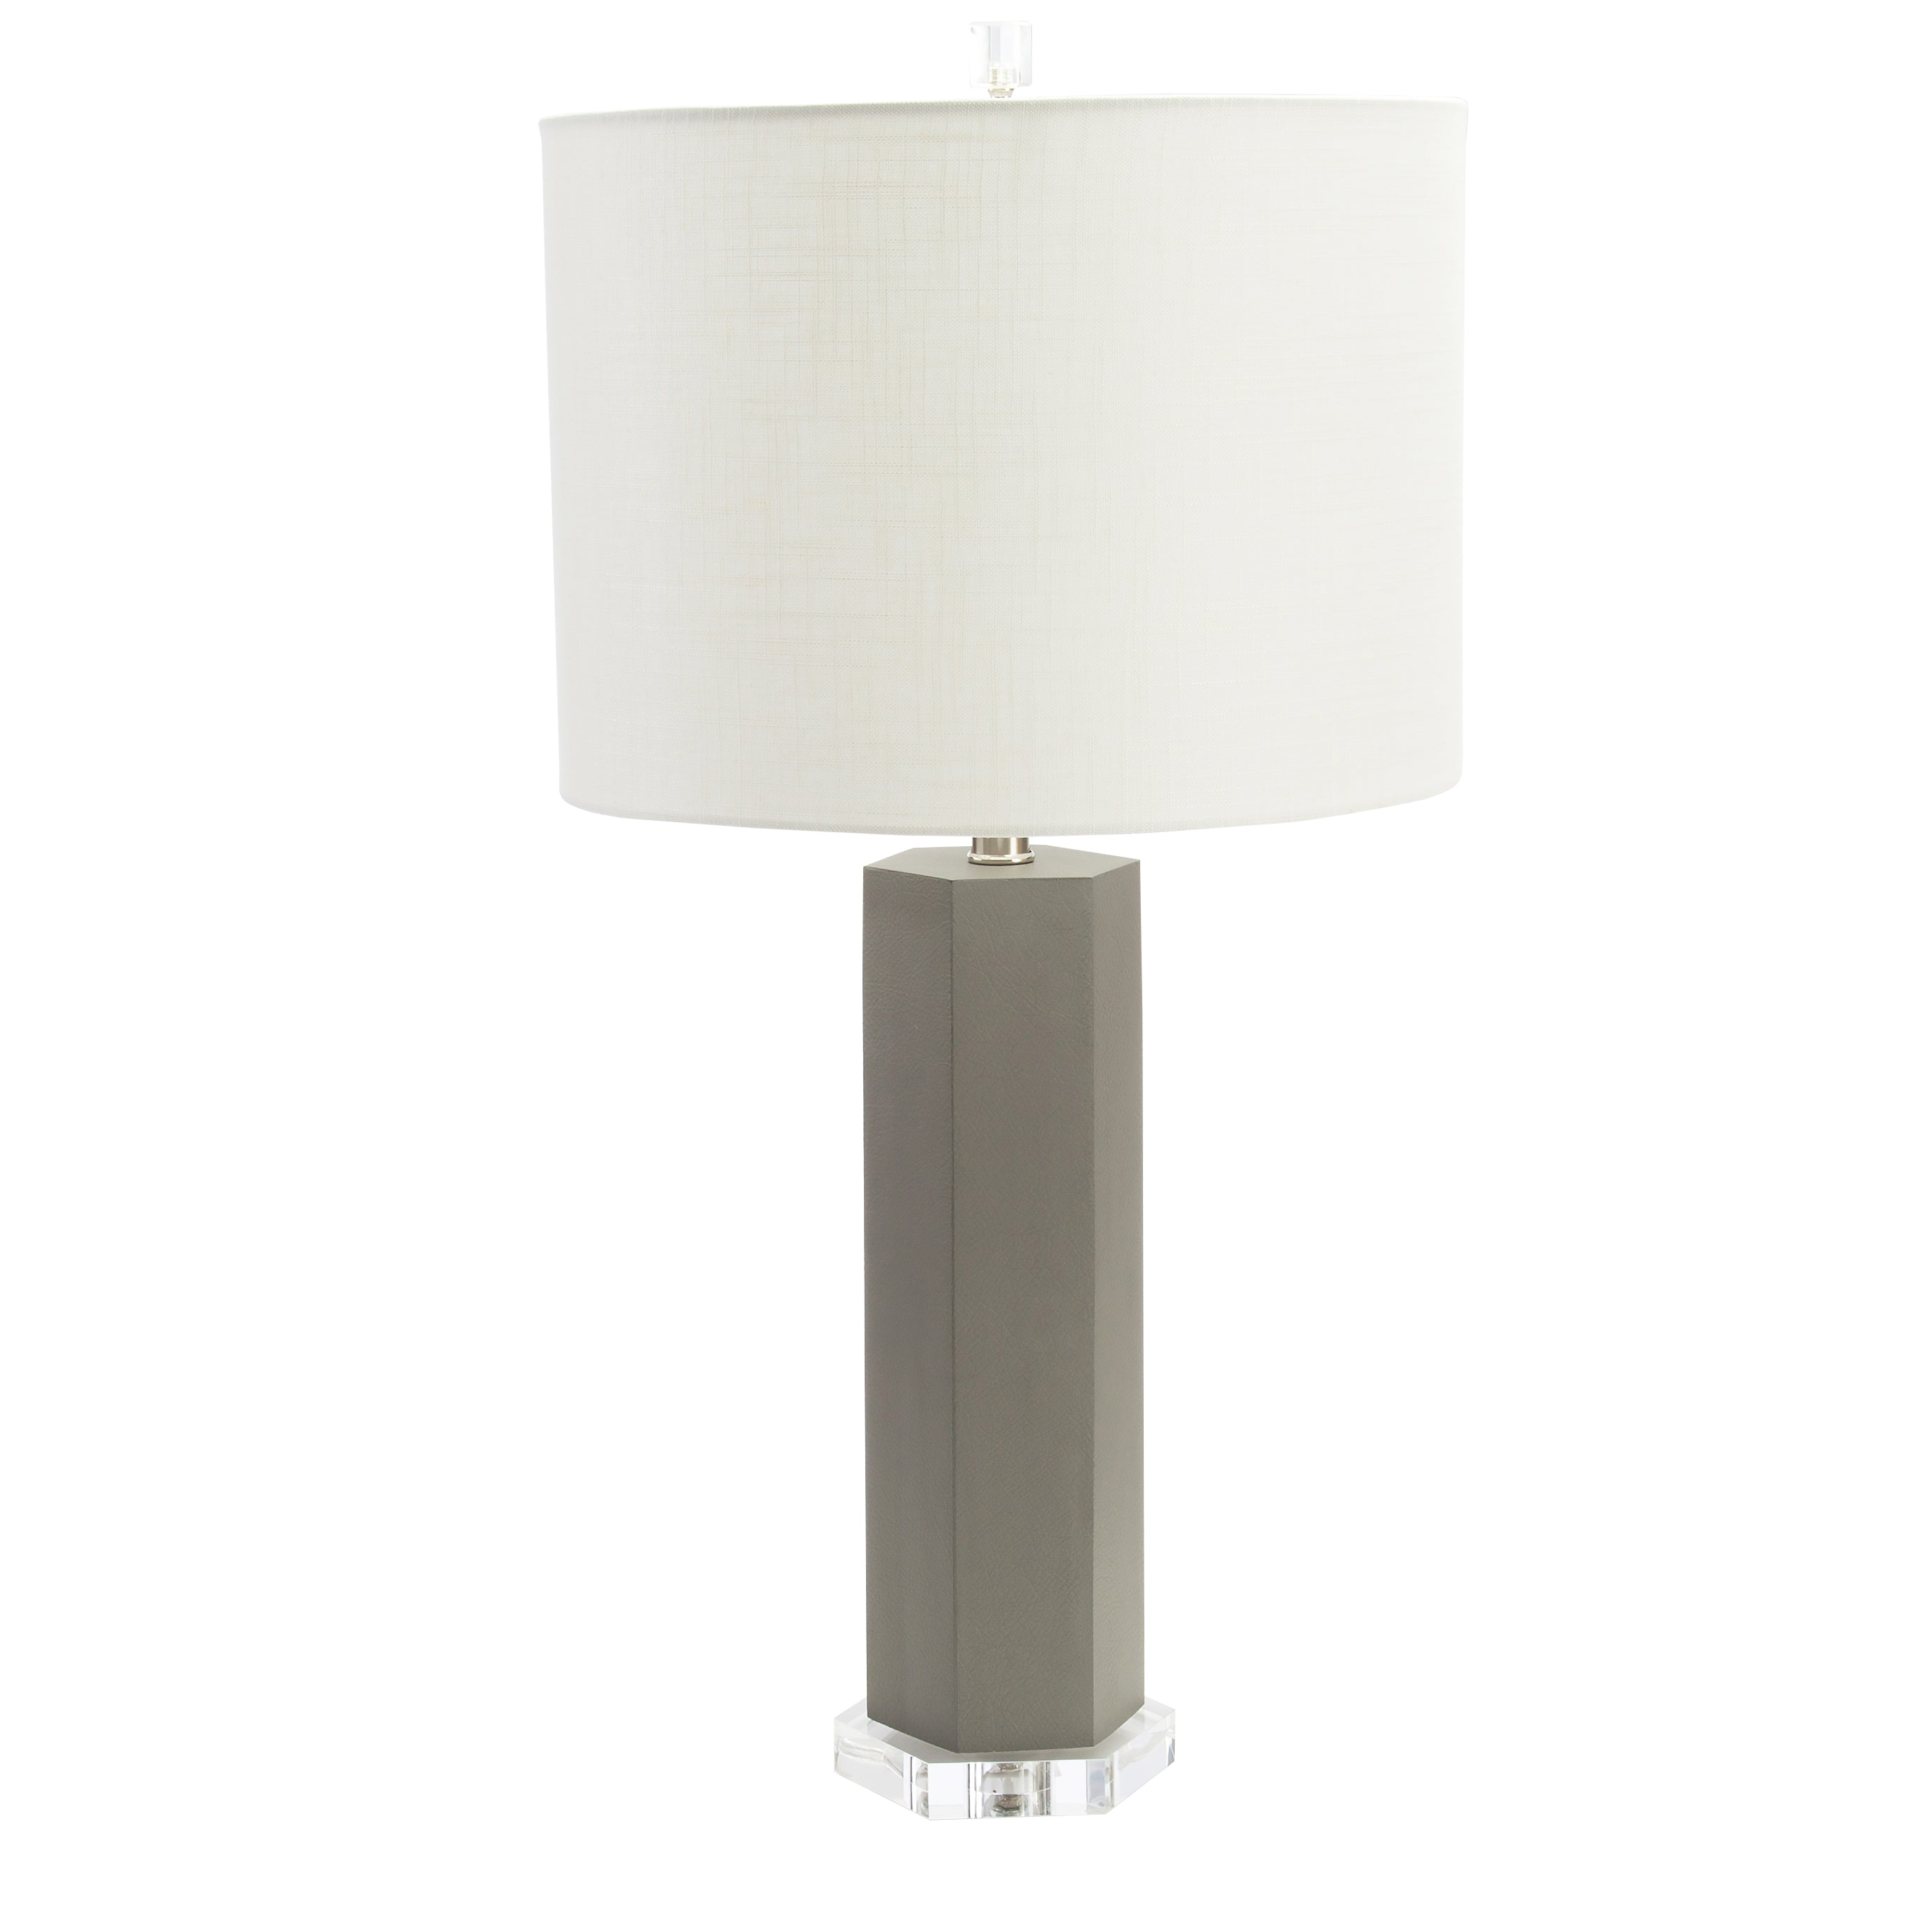 Atherton Table Lamp with Shade - Couture Lamps